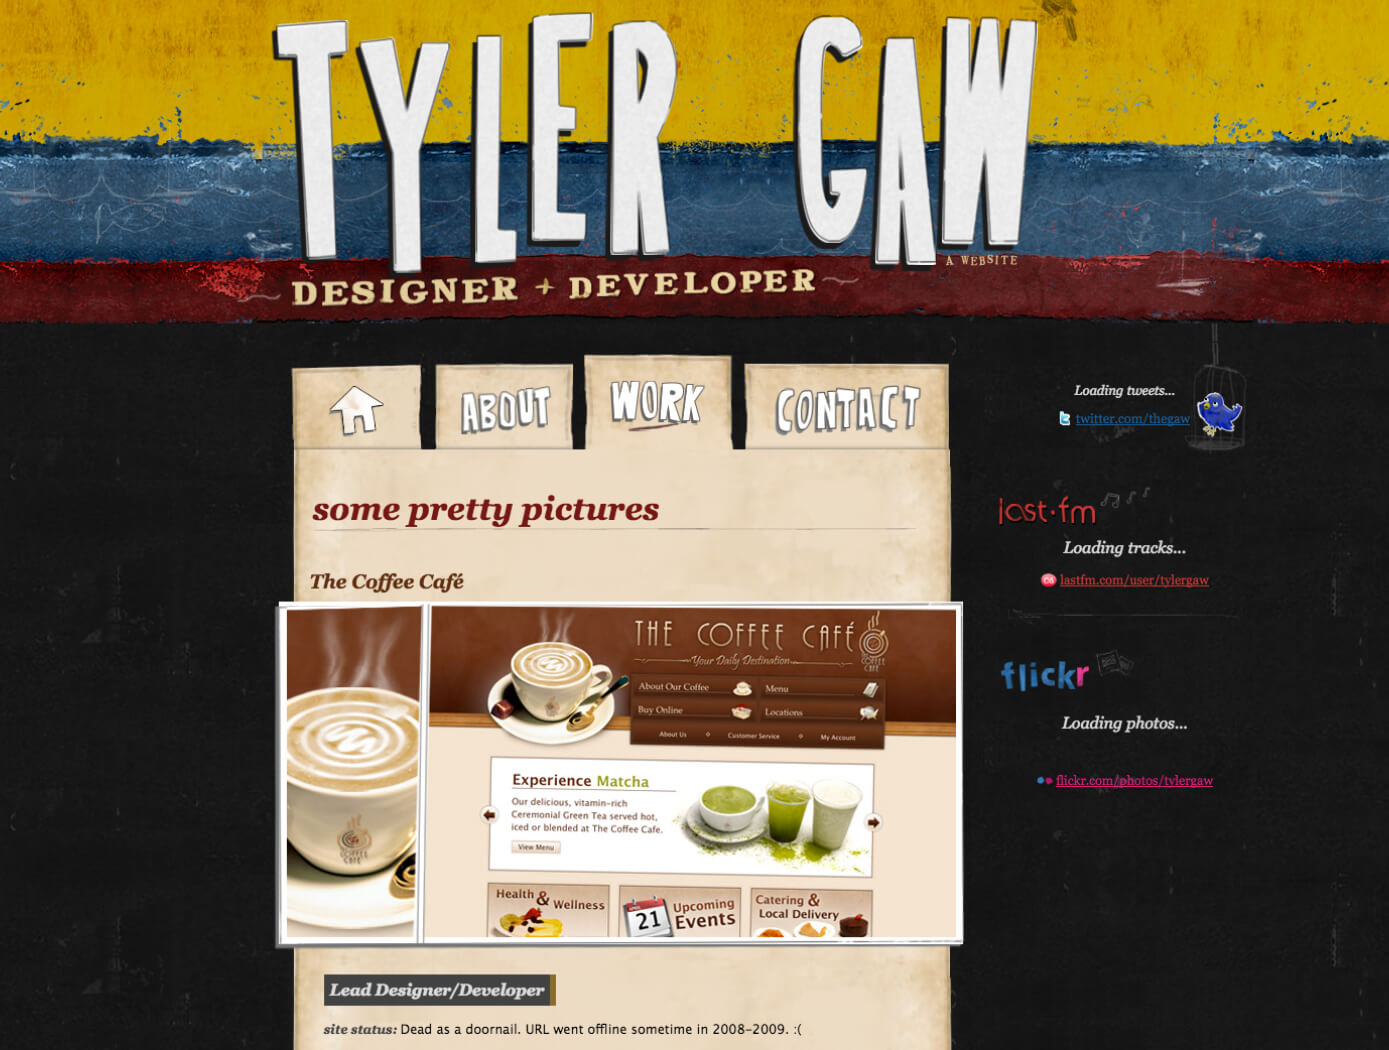 A screenshot of version 3 of tylergaw.com